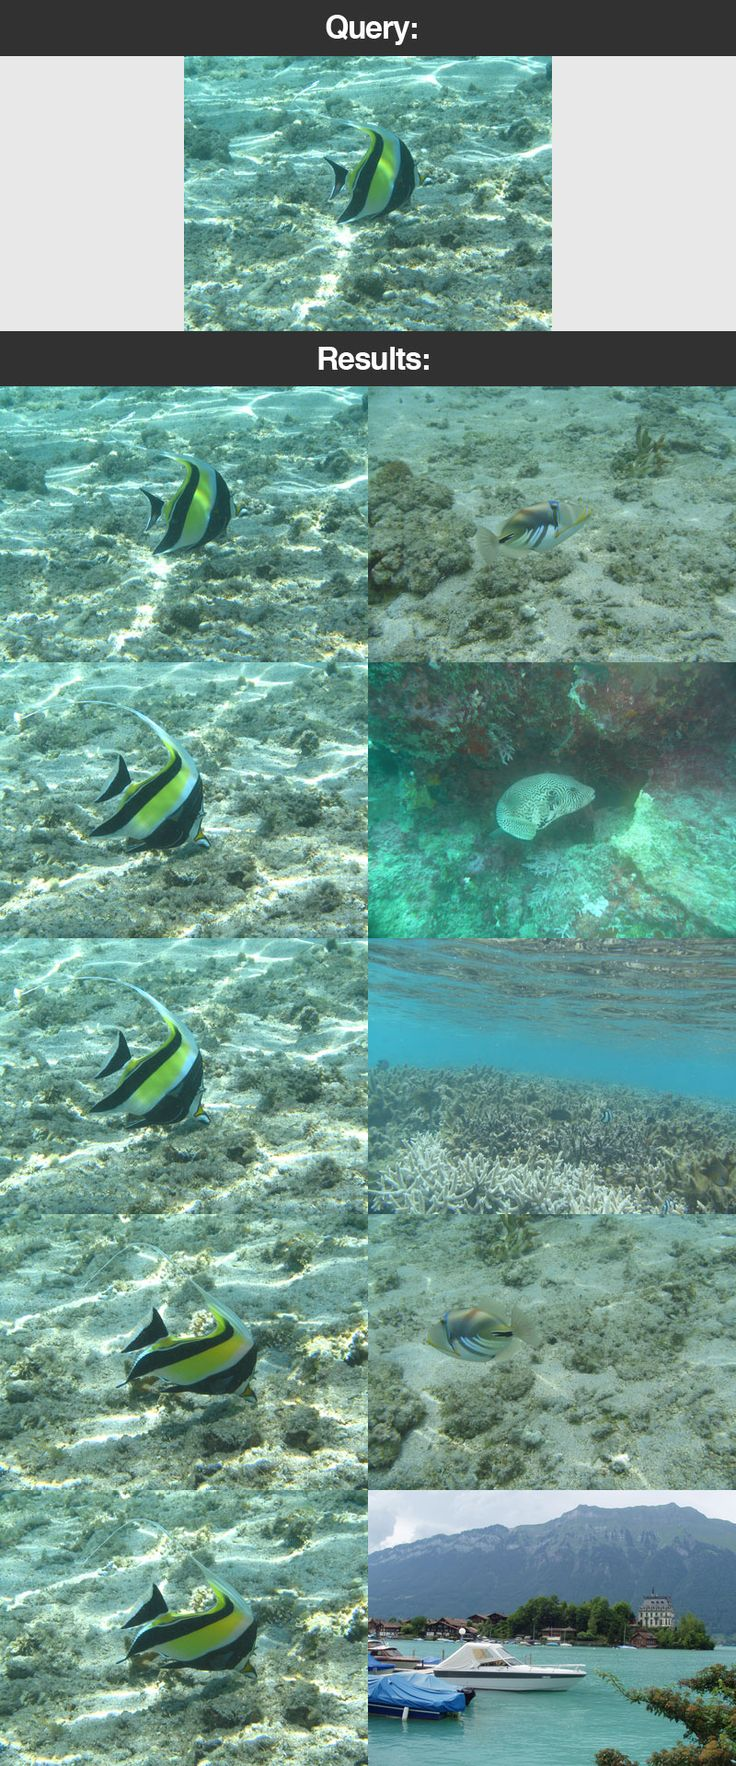 Figure 21: Once again, our image search engine is able to return relevant results. Thus time, of an underwater adventure.